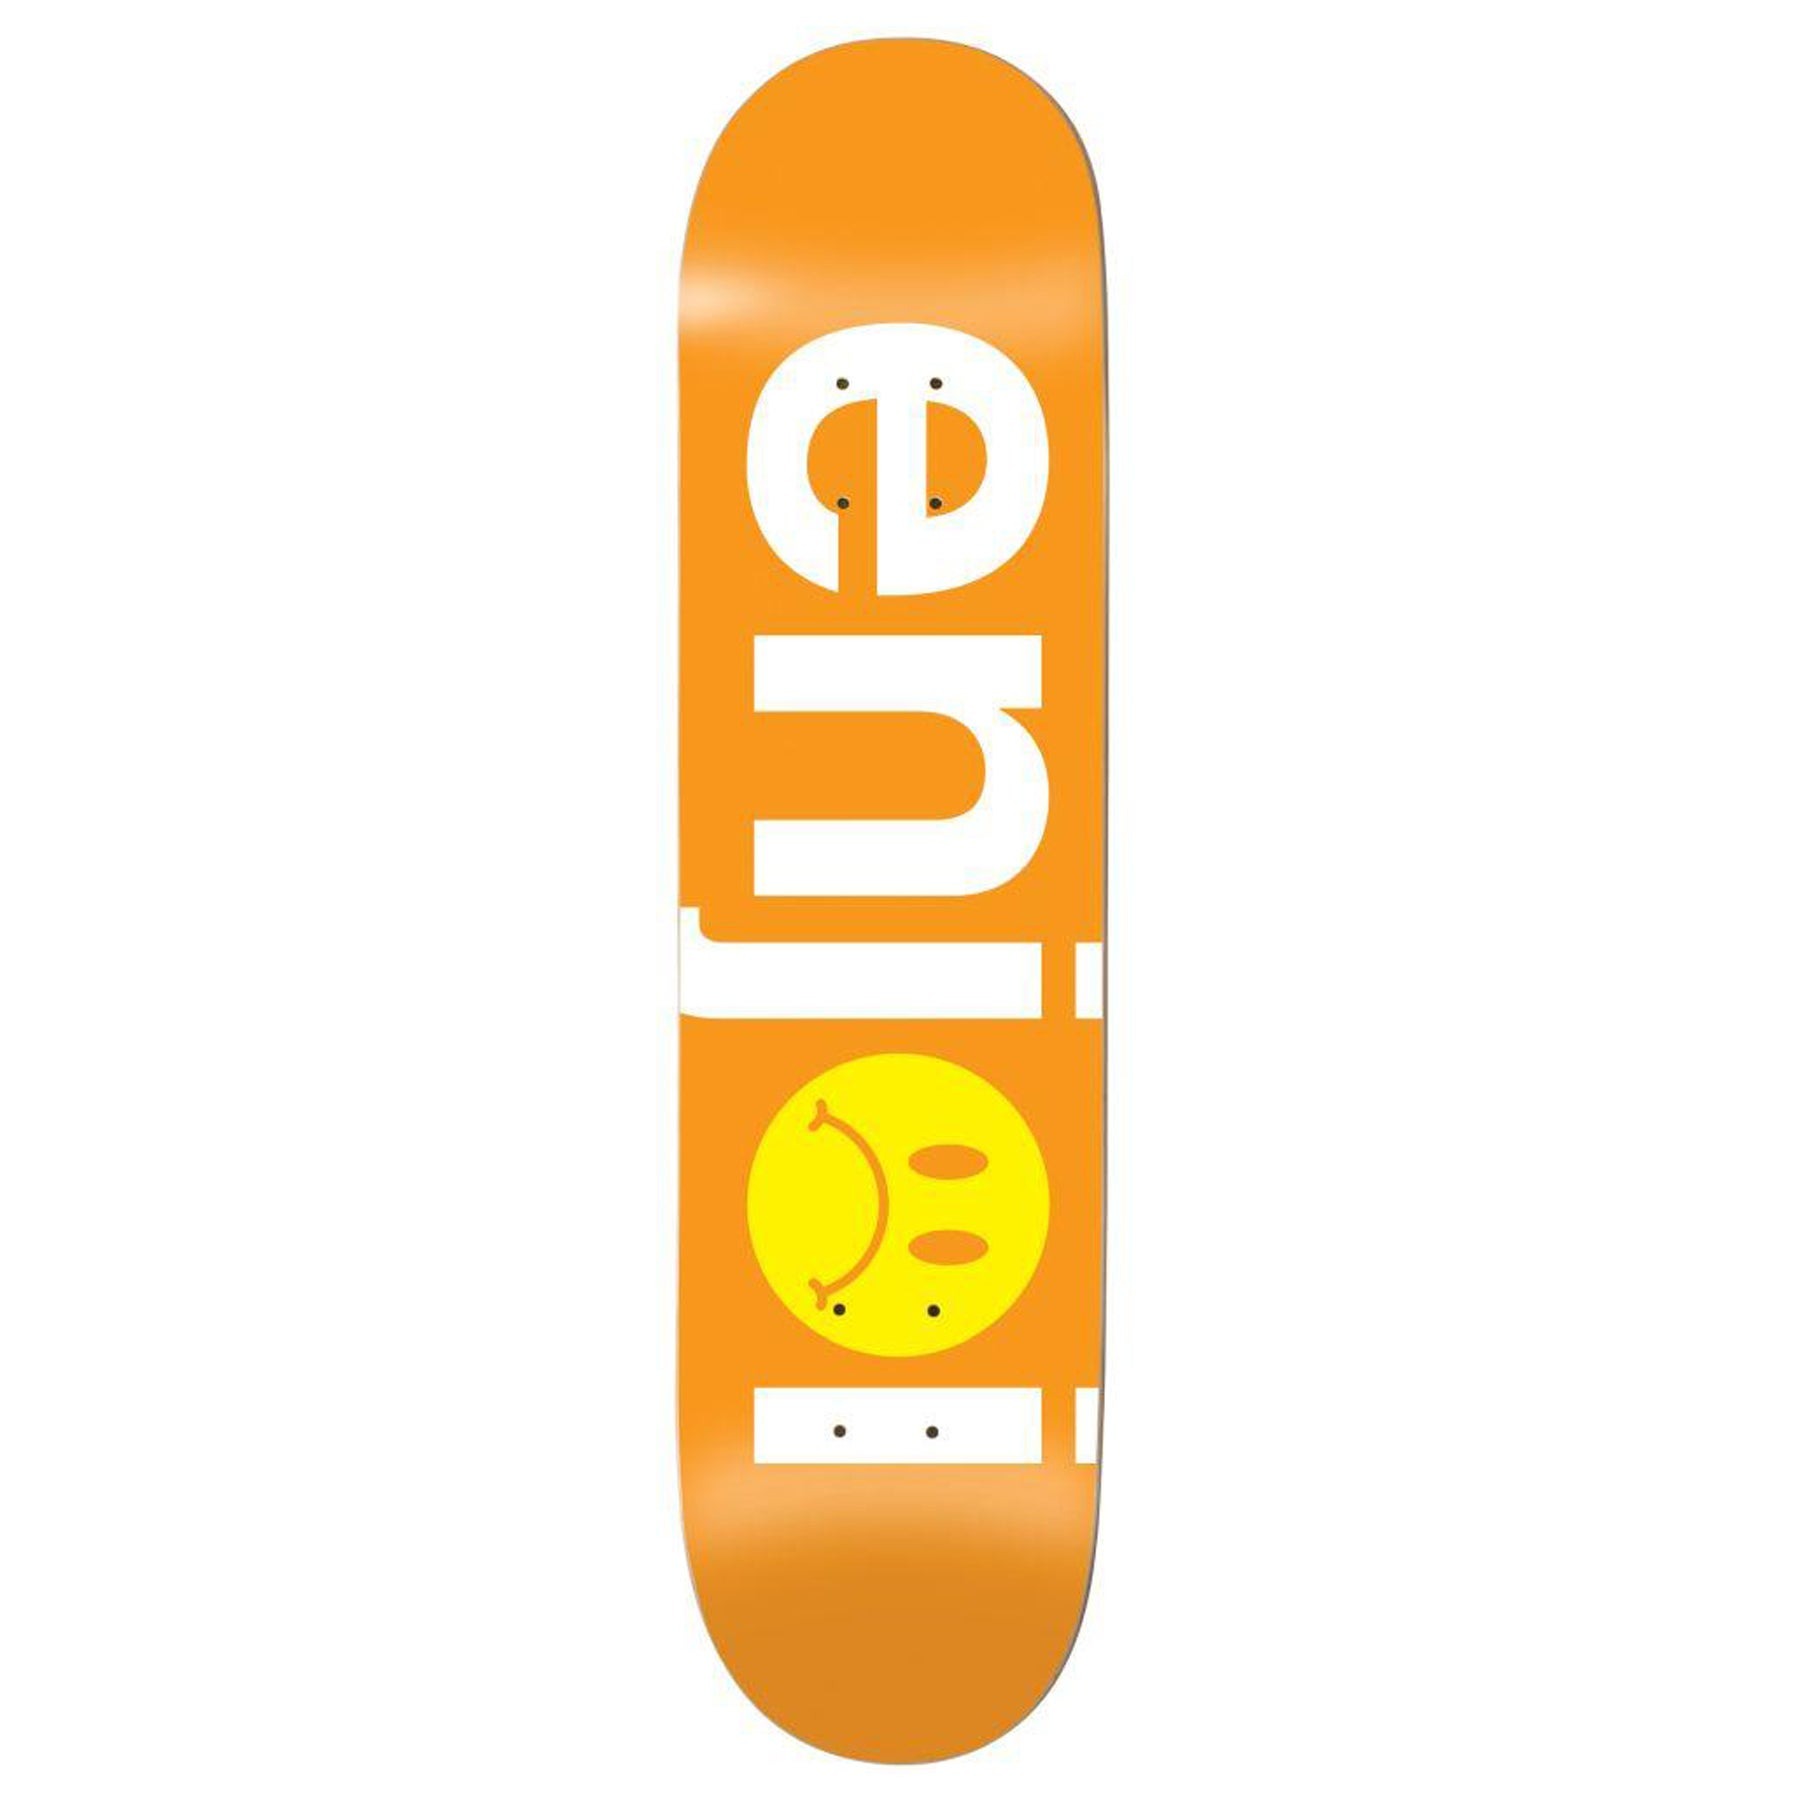 Prancha de Skate Enjoi Frowny Face No Brainer Hyb 8.125 Inch - Orange